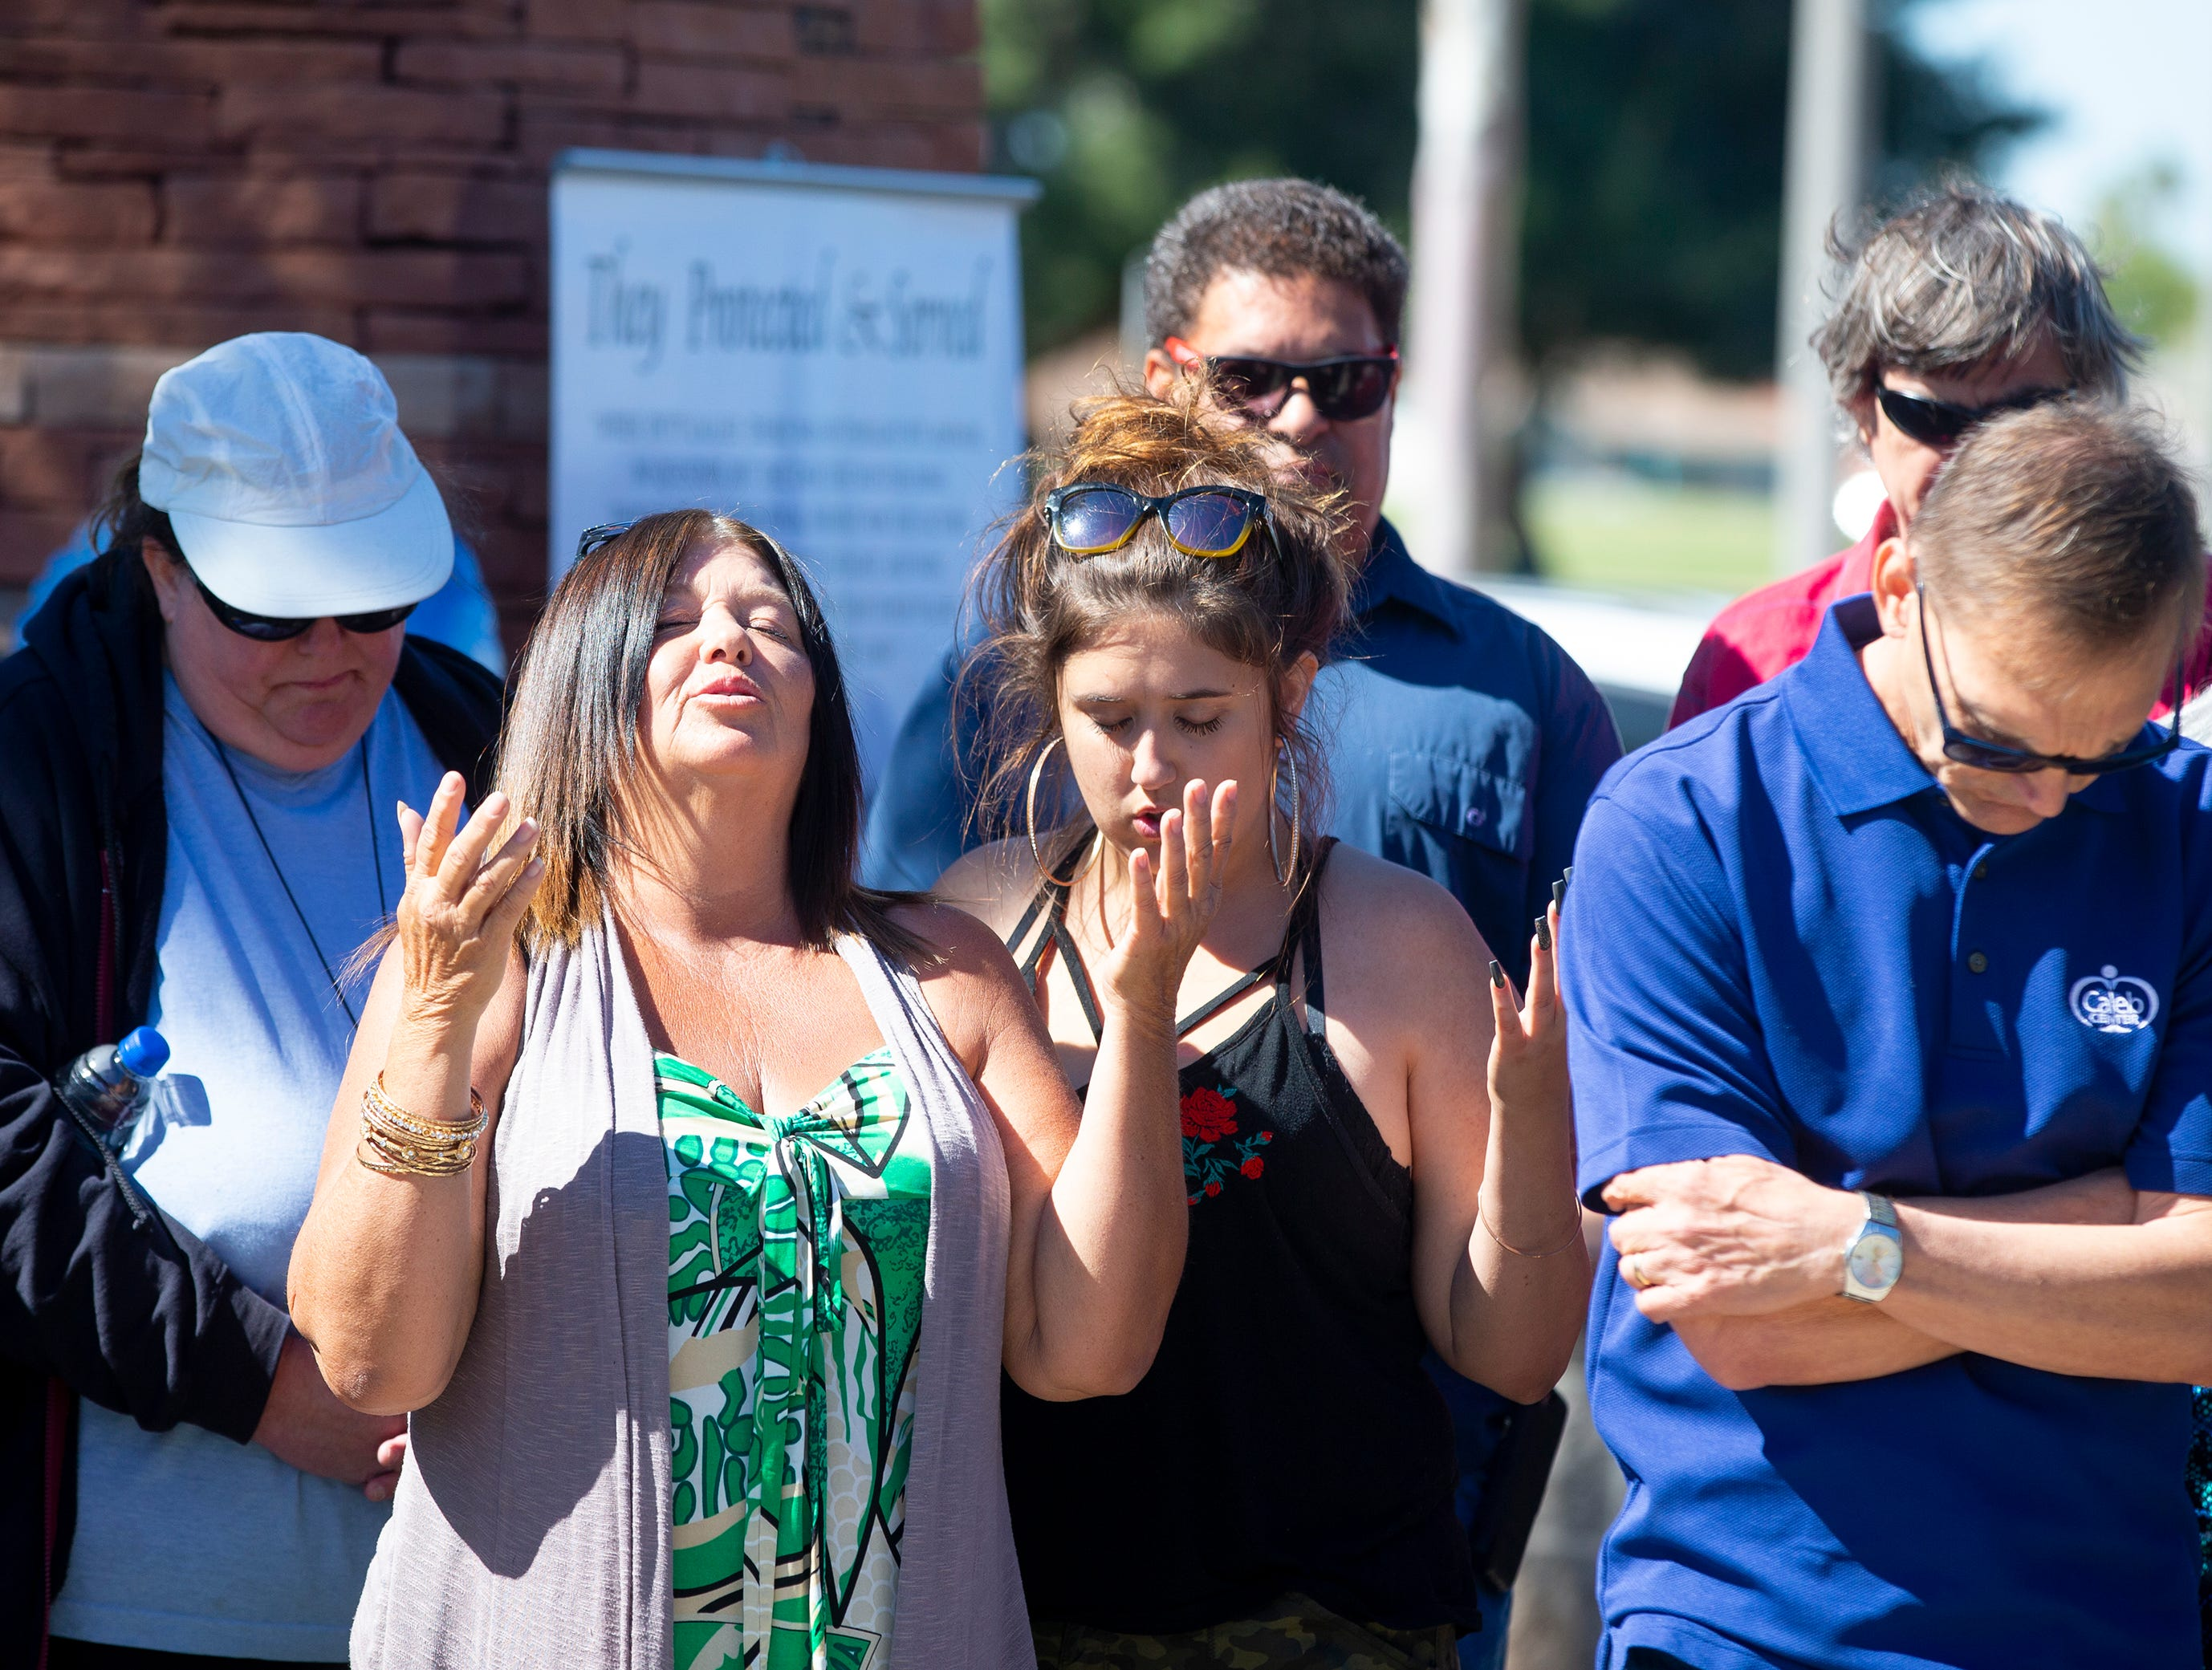 Holly Alsup of Phoenix prays March 22, 2019, during a gathering outside Phoenix Police Maryvale Precinct for Officer Paul Rutherford, who was killed in a crash March 21.